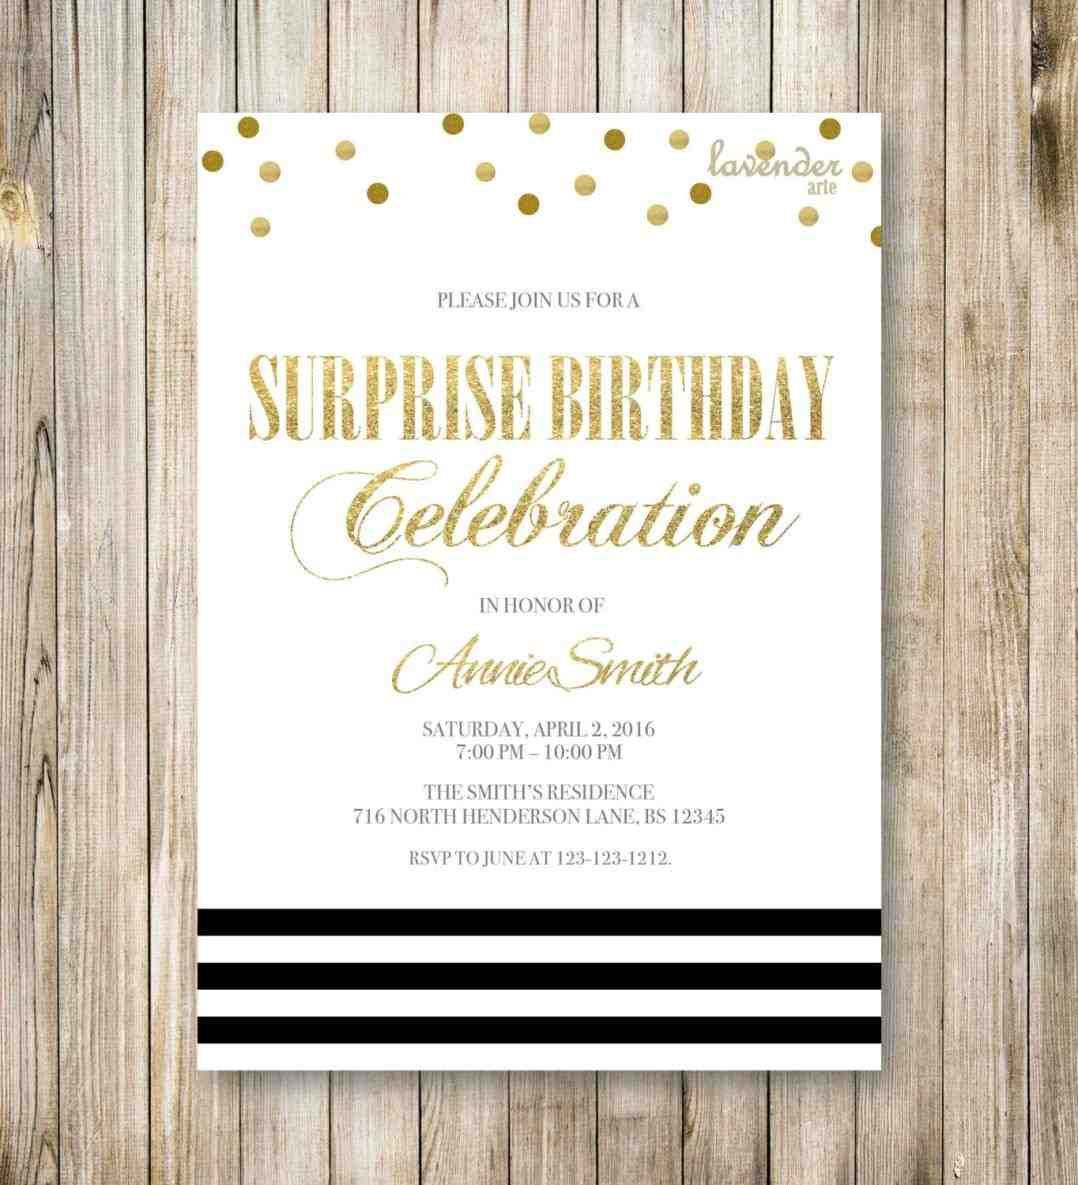 Full size of designexquisite 70th birthday party invitations free full size of designexquisite 70th birthday party invitations free templates with white high definition 70th birthday invitation templates free and get filmwisefo Image collections